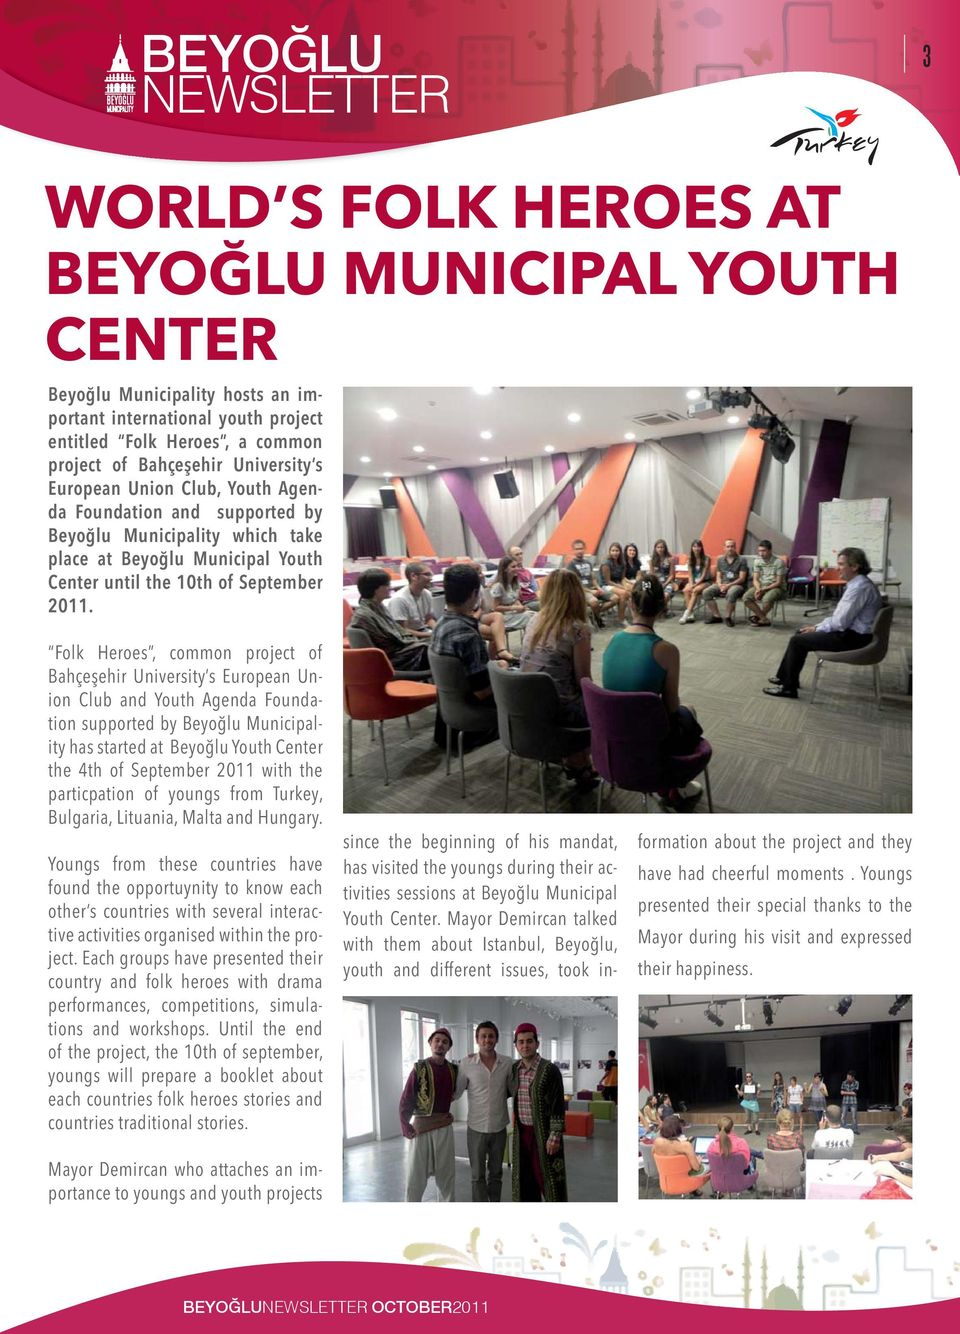 Folk Heroes, common project of Bahçeşehir University s European Union Club and Youth Agenda Foundation supported by Beyoğlu Municipality has started at Beyoğlu Youth Center the 4th of September 2011